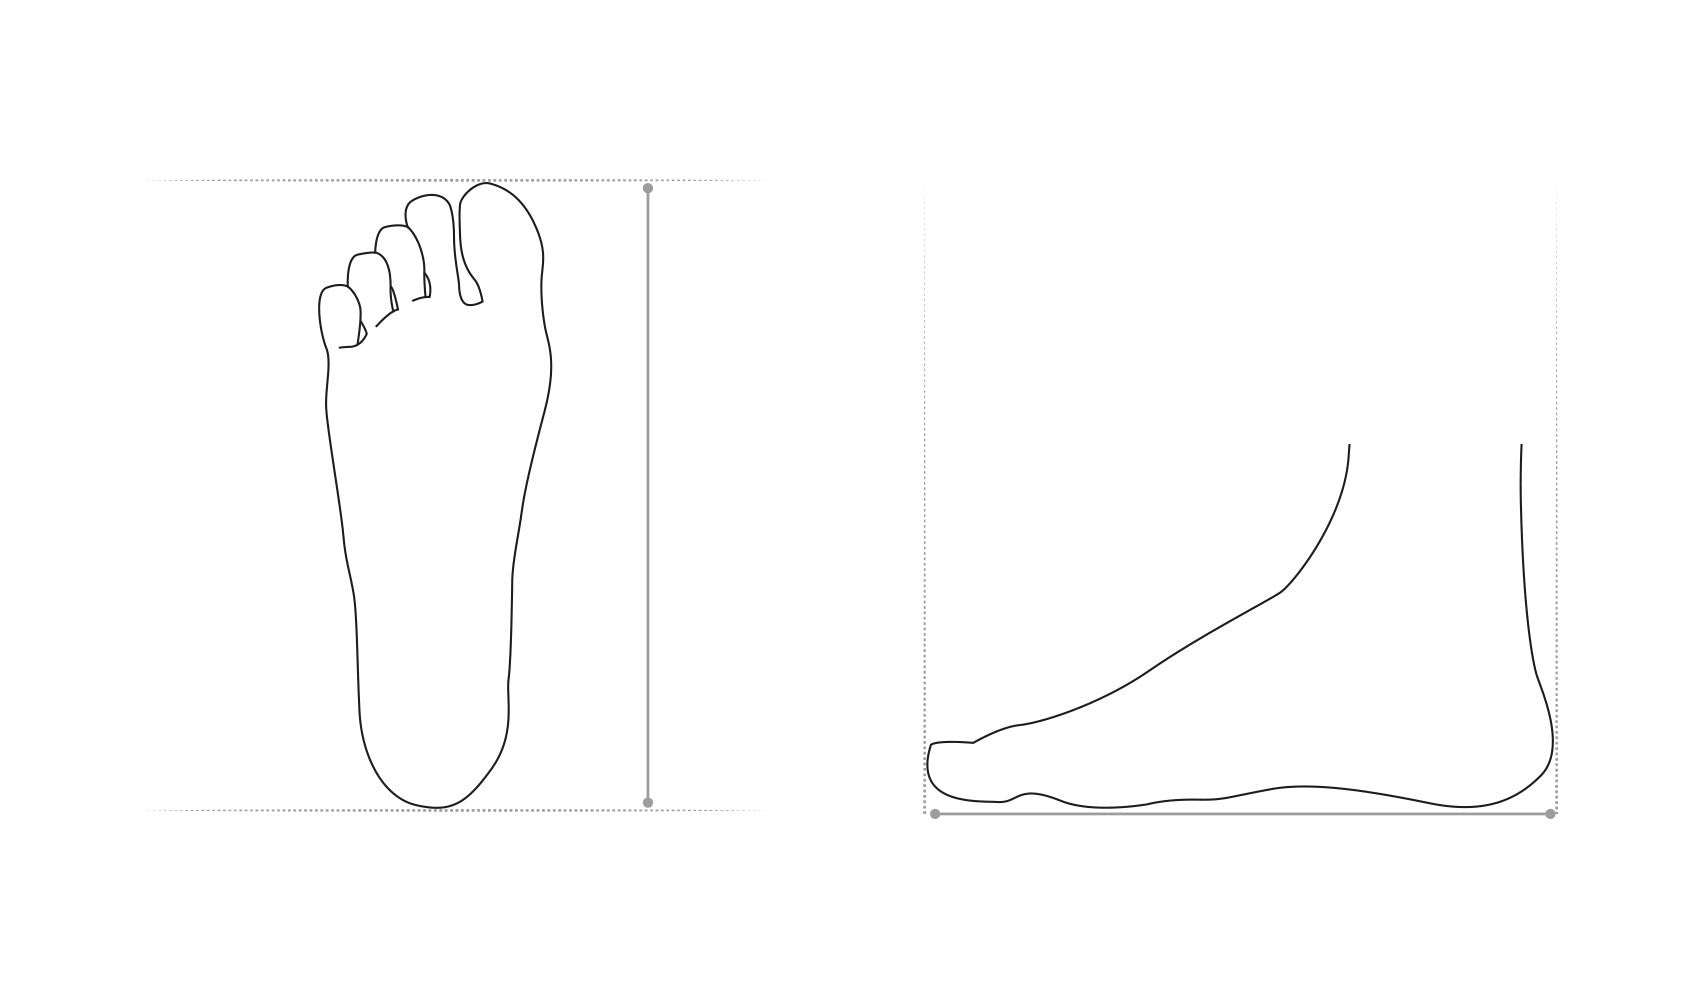 Heel To Toe Measurement